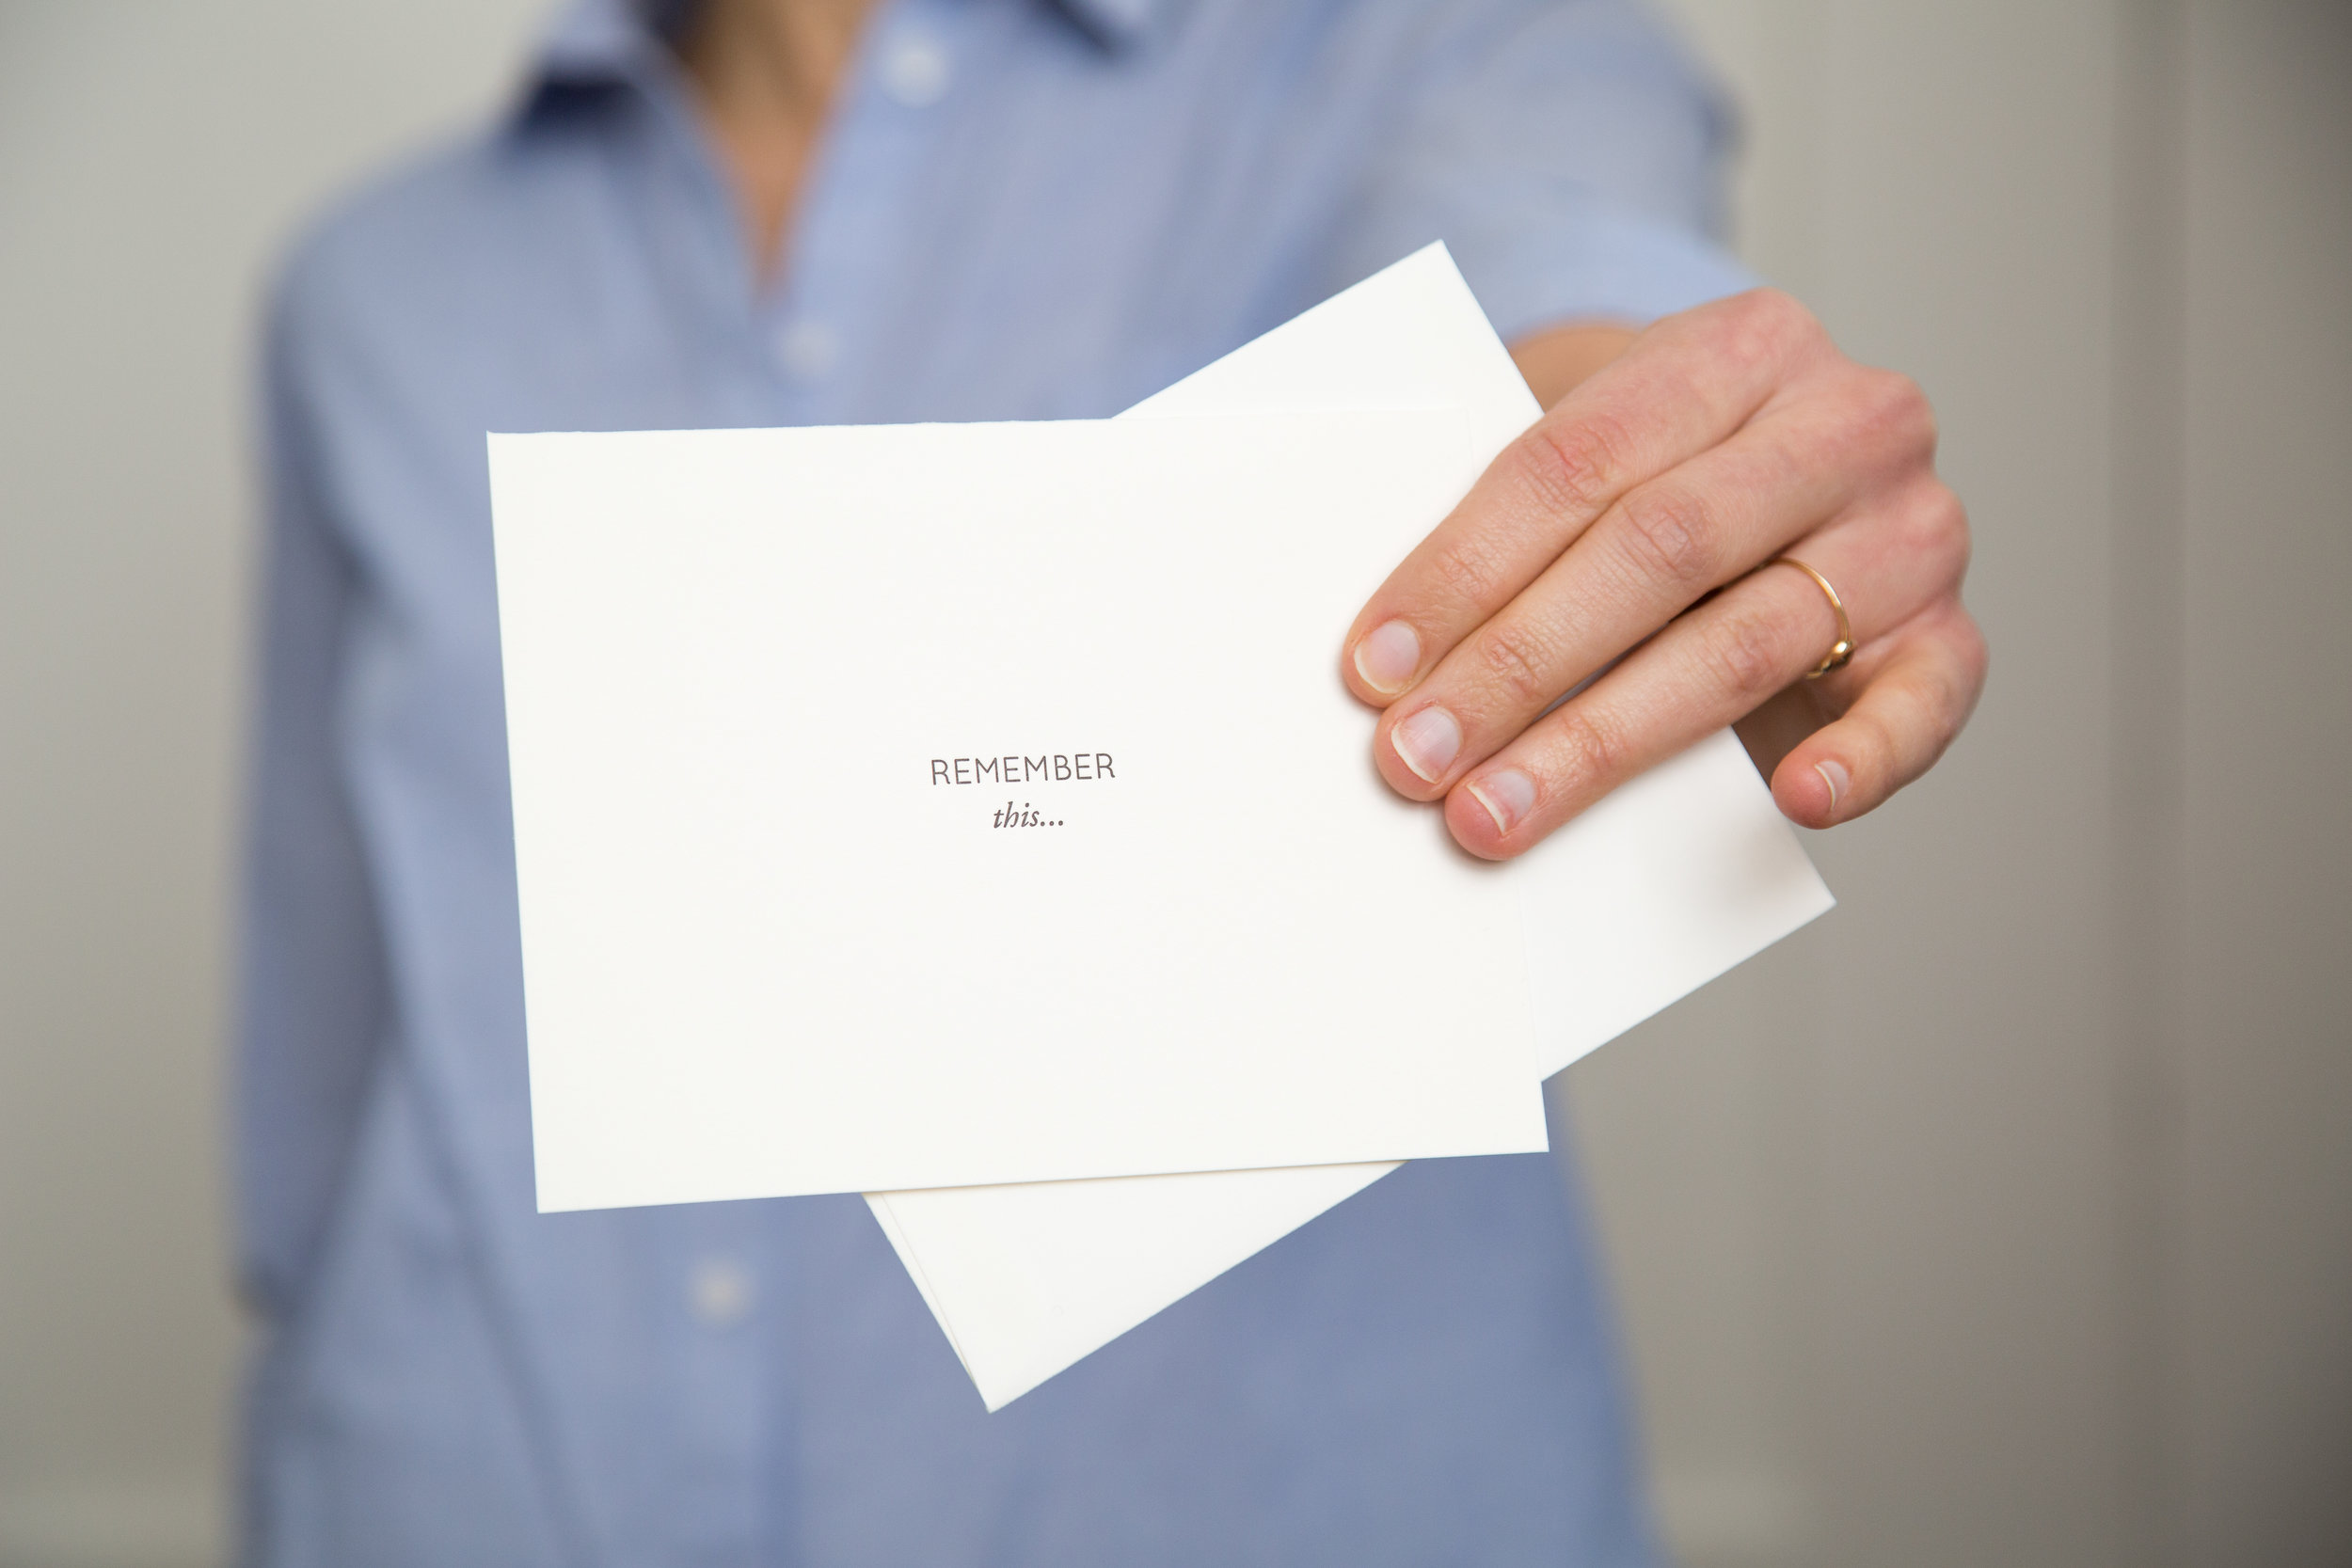 Remember this... your job does not define you | Letterpress cards for encouragement and support by Of Note Stationers